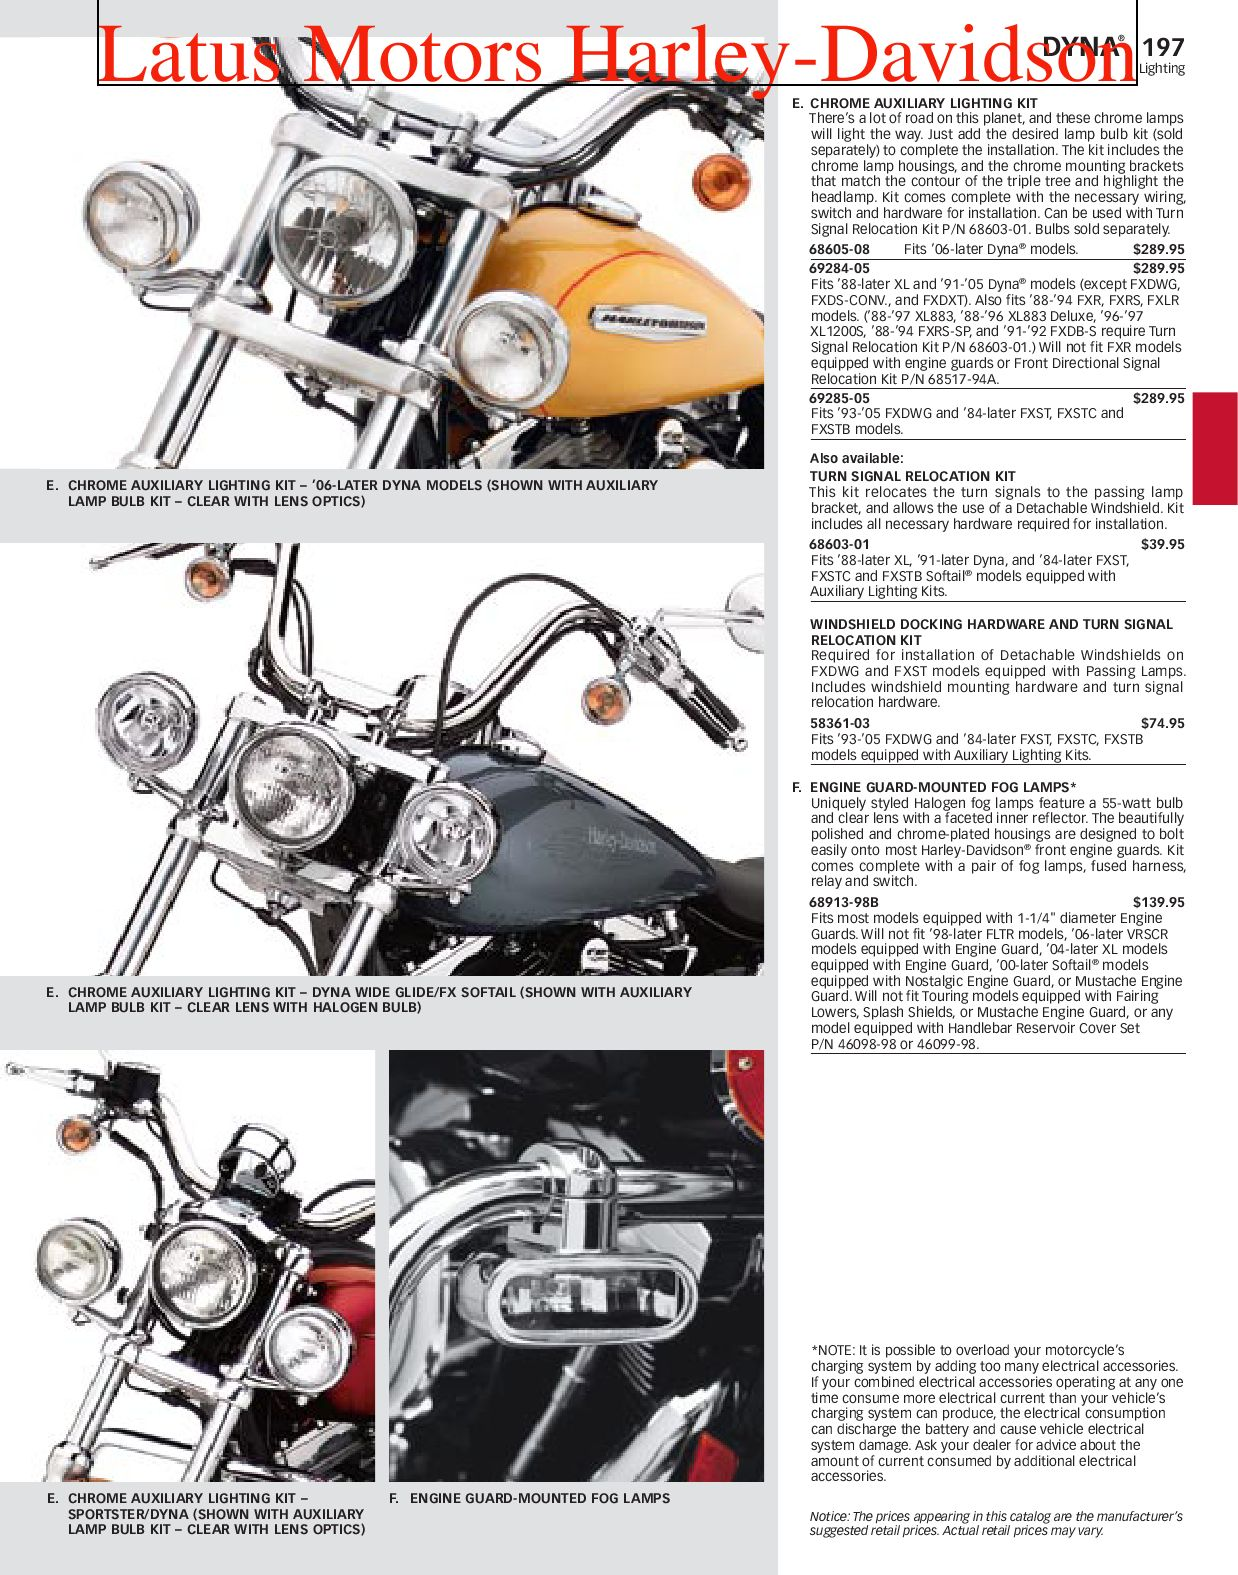 Part 1 Harley-Davidson Parts and Accessories Catalog by Harley ... Harley Wiring Harness For Fog Lights on pontiac g6 low beam harness, fog lights kit chevy, fog light connectors, camaro fog light harness, fog light grille, fog light resistor, fog light bumper, fog light computer, motor harness, fog light cover, tail light pigtail harness, speed sensor harness, fog lights for cars, fog light yellow paint, fog light bracket, fog light hood, fog light accessories, fog light glass, fog light switches, fog light bulbs,